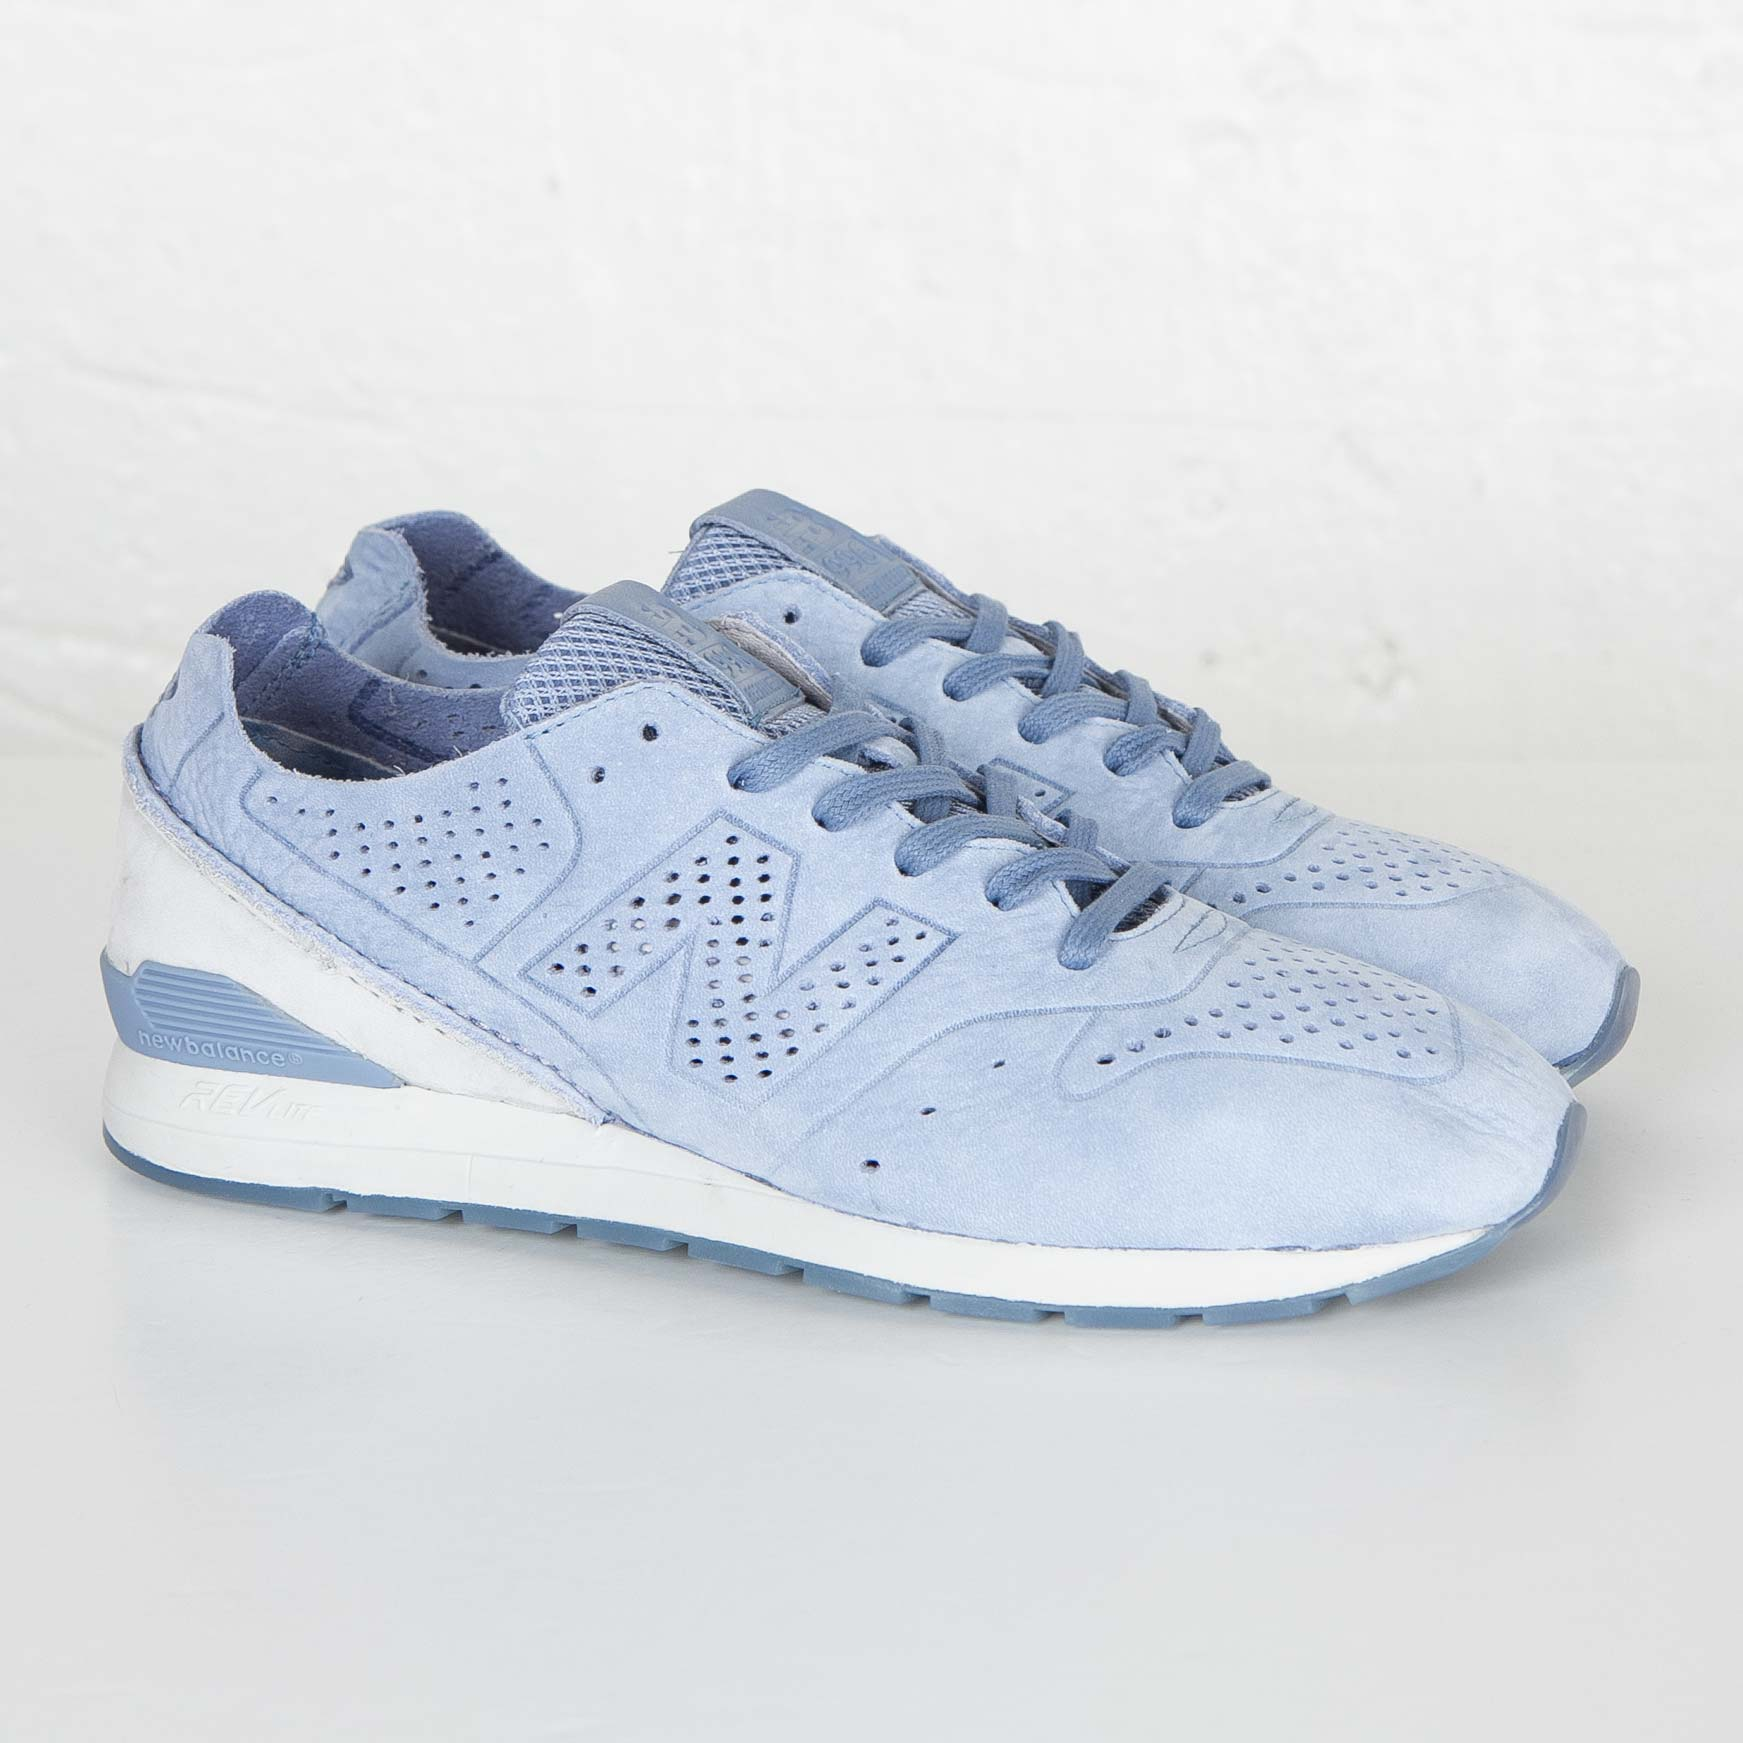 The newest New Balance 996 Slate Blue Mens Sneakers, Discount